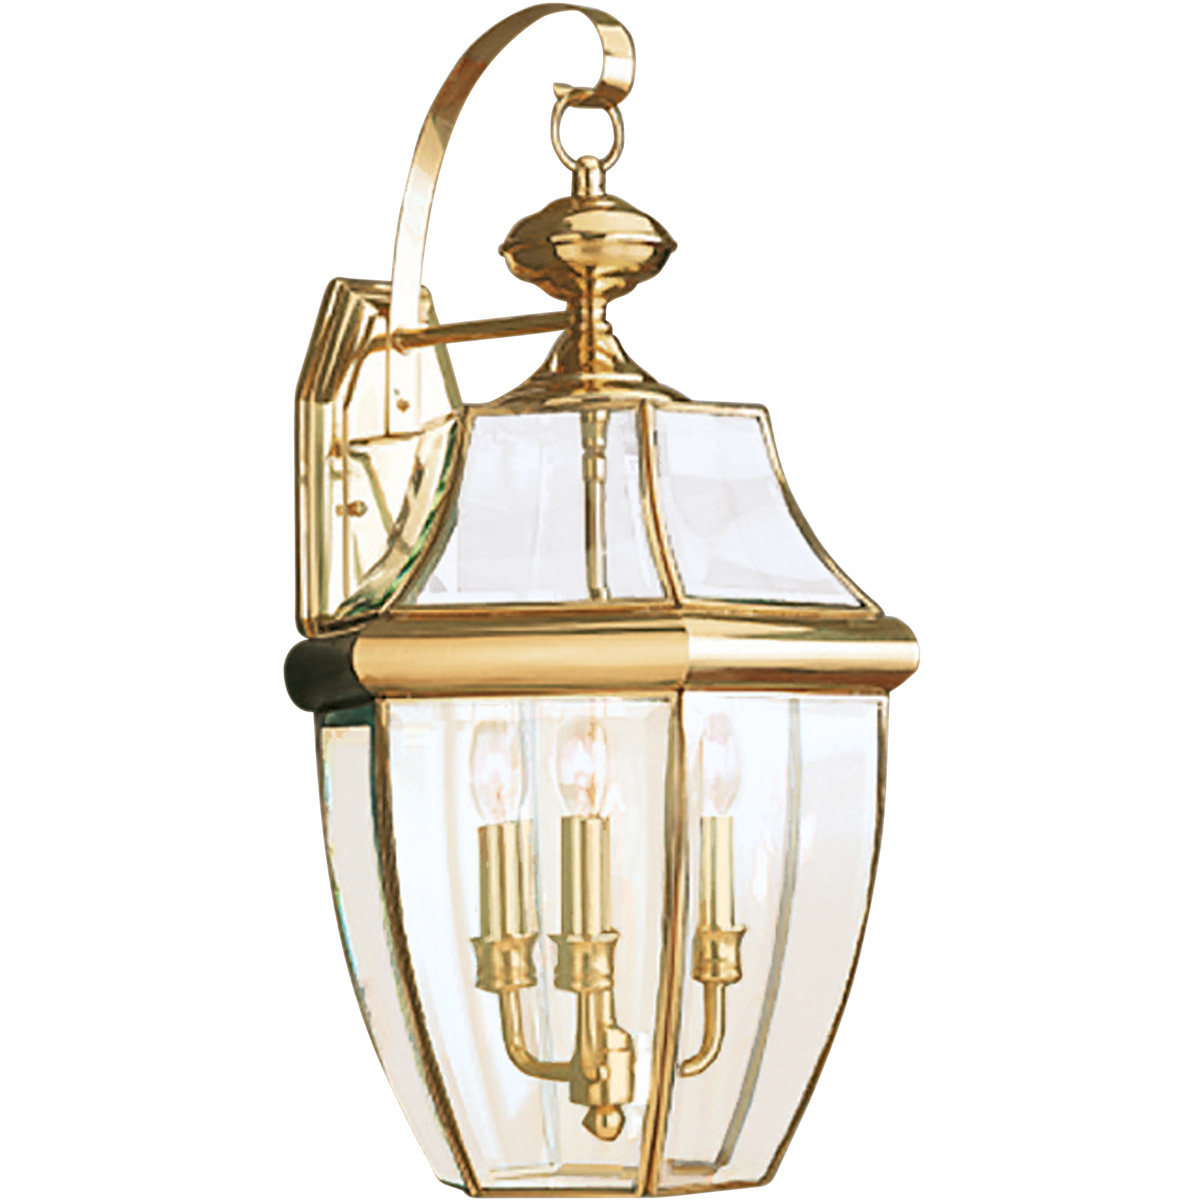 Sea Gull Lighting Lancaster 3 Light Outdoor Wall Lantern in Polished Brass 8040-02 photo